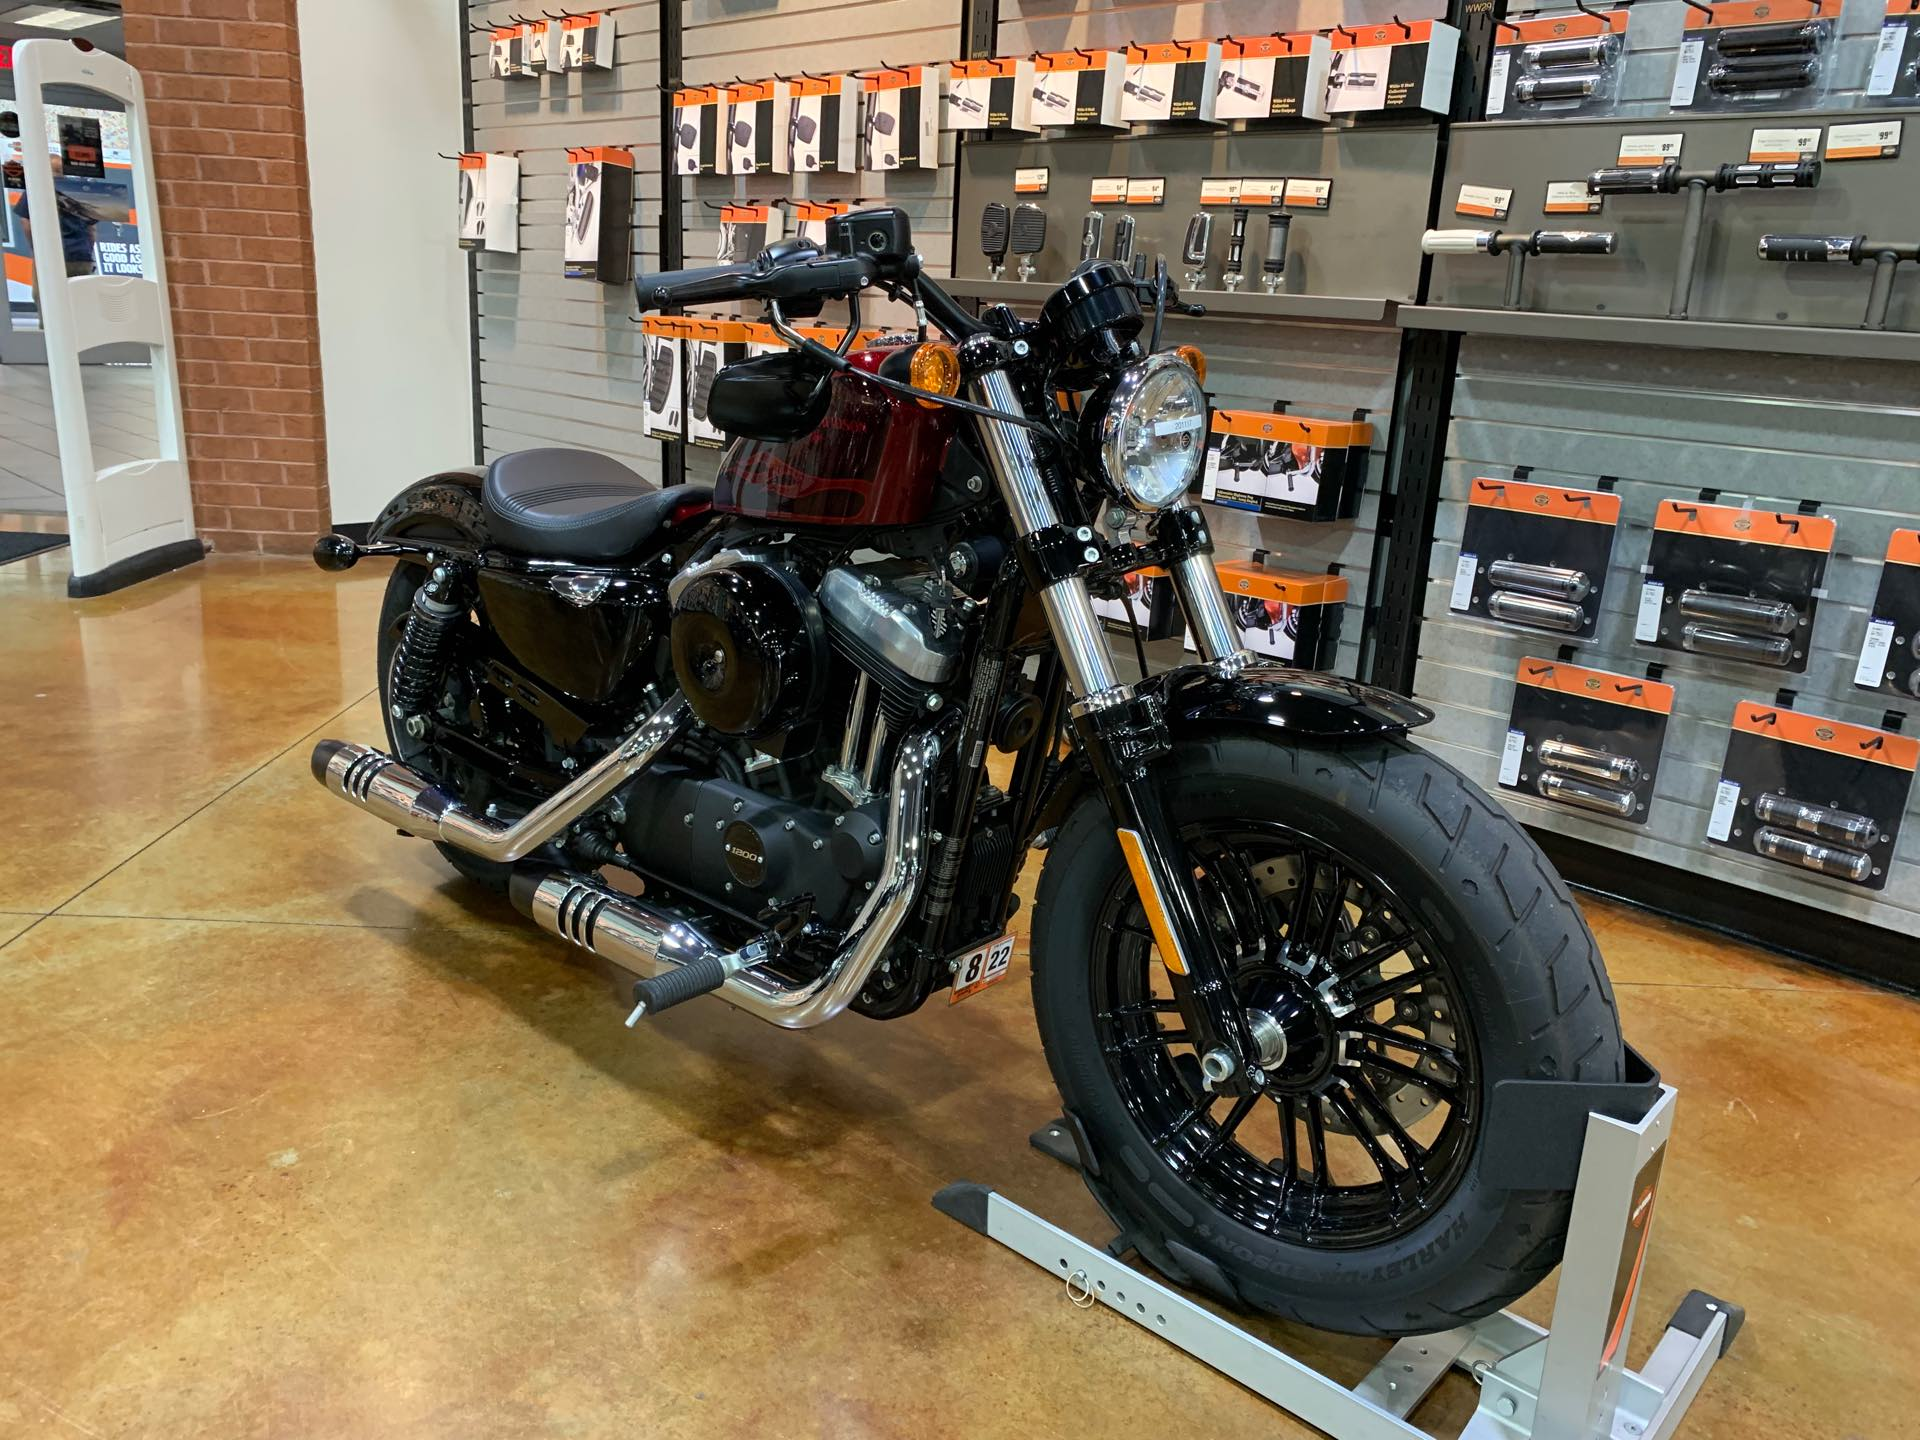 2017 Harley-Davidson Sportster Forty-Eight at Colonial Harley-Davidson